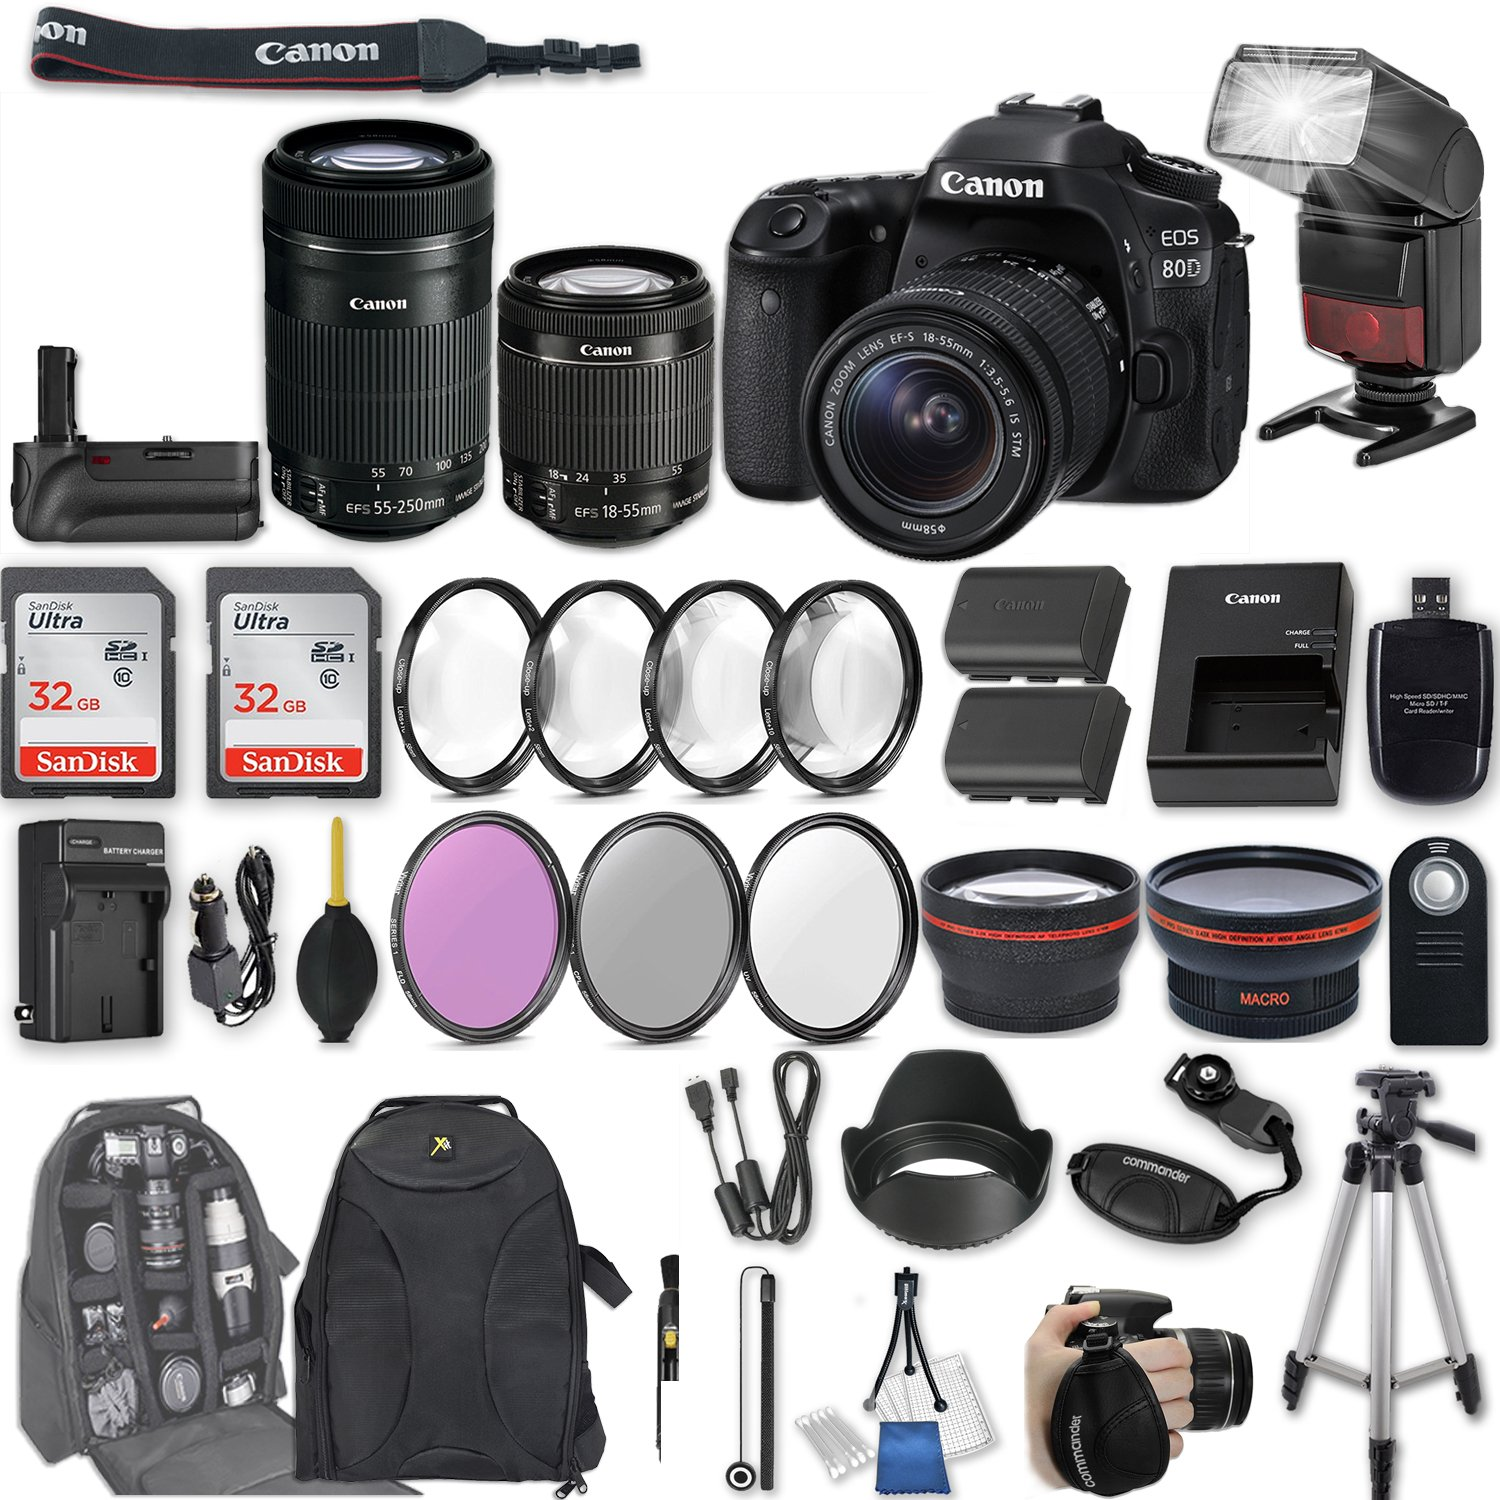 Canon EOS 80D DSLR Camera with EF-S 18-55mm f/3.5-5.6 IS STM Lens + EF-S 55-250mm f/4-5.6 IS STM Lens + 2Pcs 32GB Sandisk SD Memory + Automatic Flash + Battery Grip + Filter & Macro Kits + More by Canon